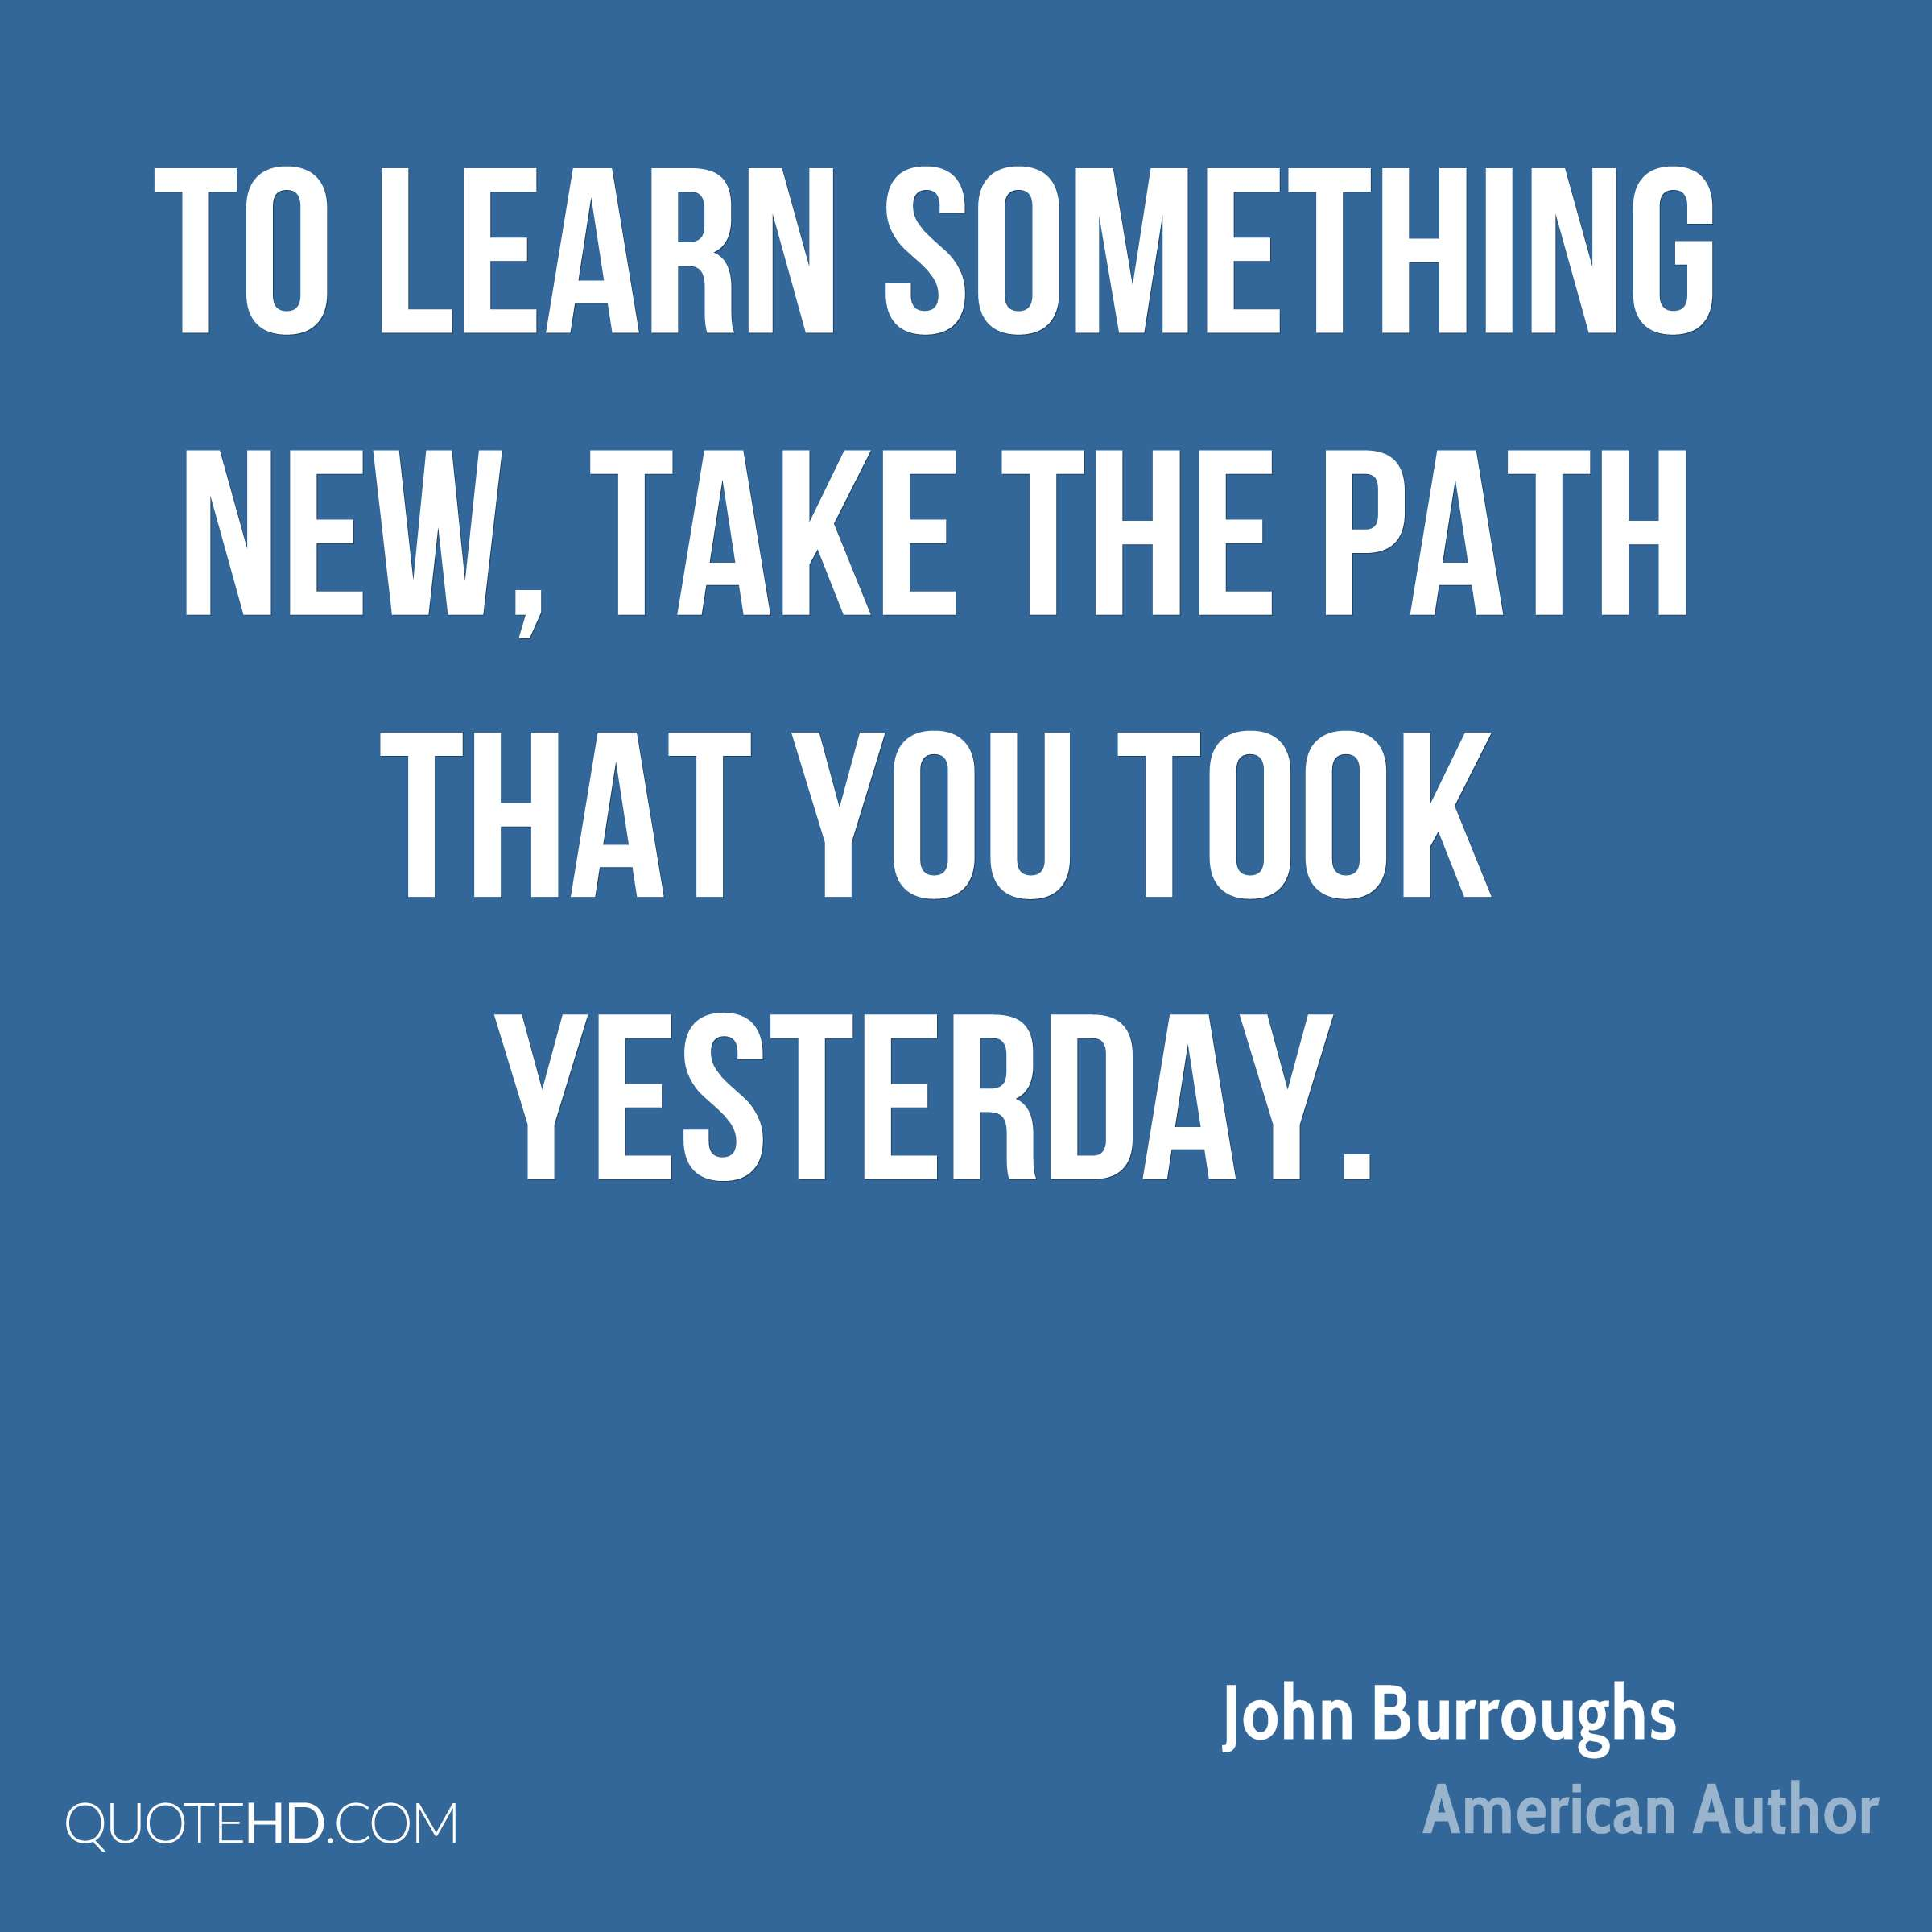 To learn something new, take the path that you took yesterday.